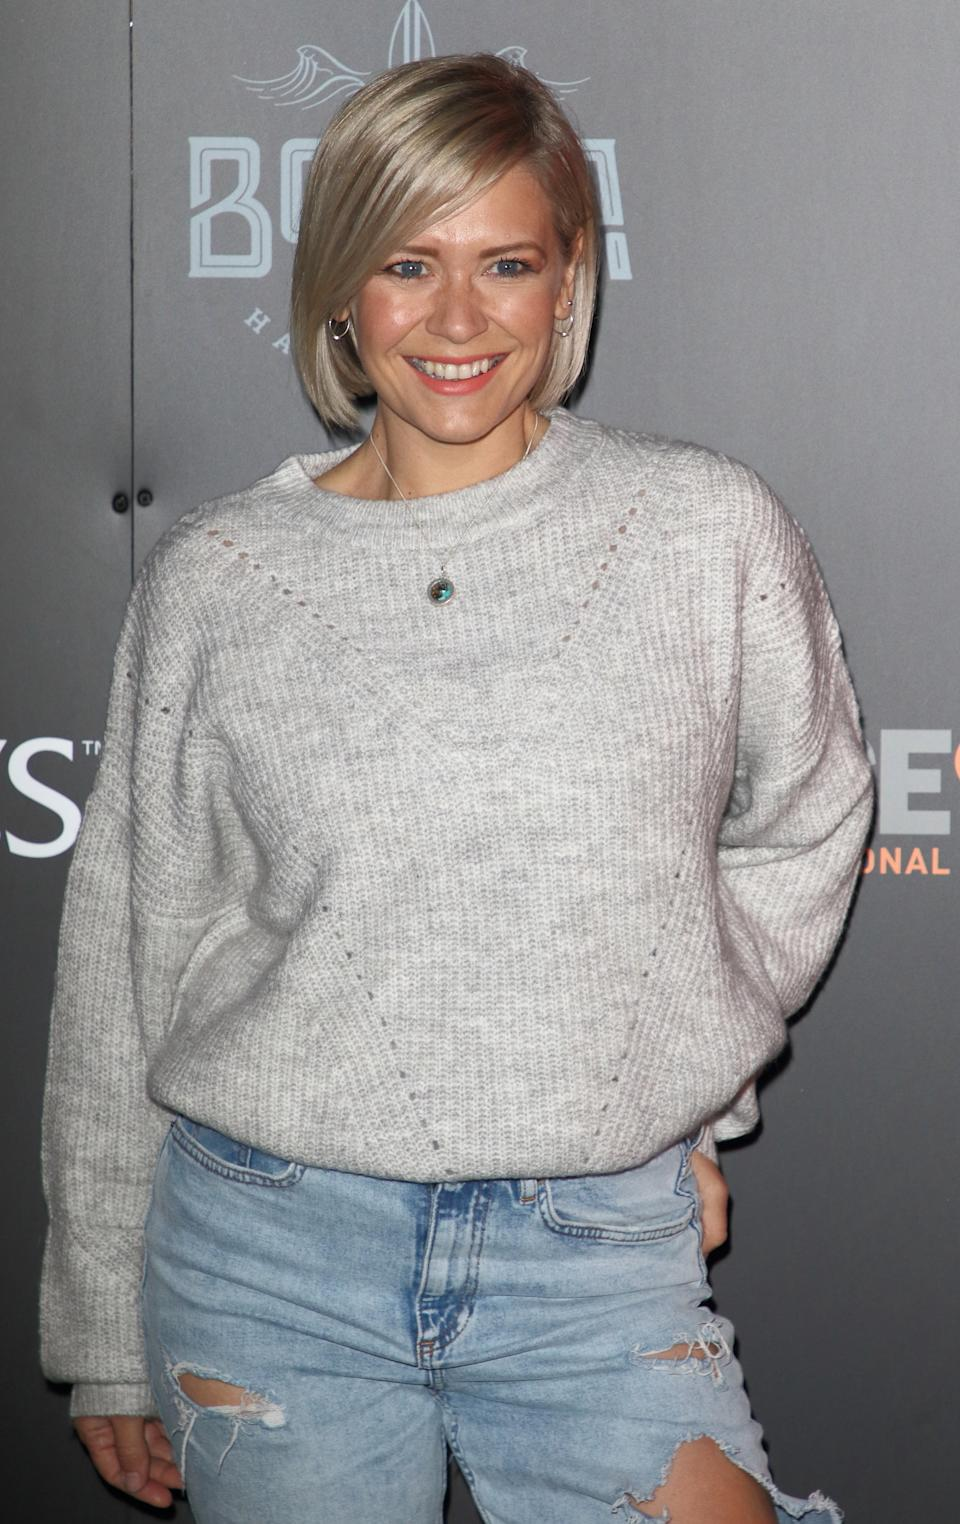 Suzanne Shaw attends the Tulleys Haunted Drive-In Cinema VIP night at Tulleys Farm Event Centre. (Photo by Keith Mayhew / SOPA Images/Sipa USA)